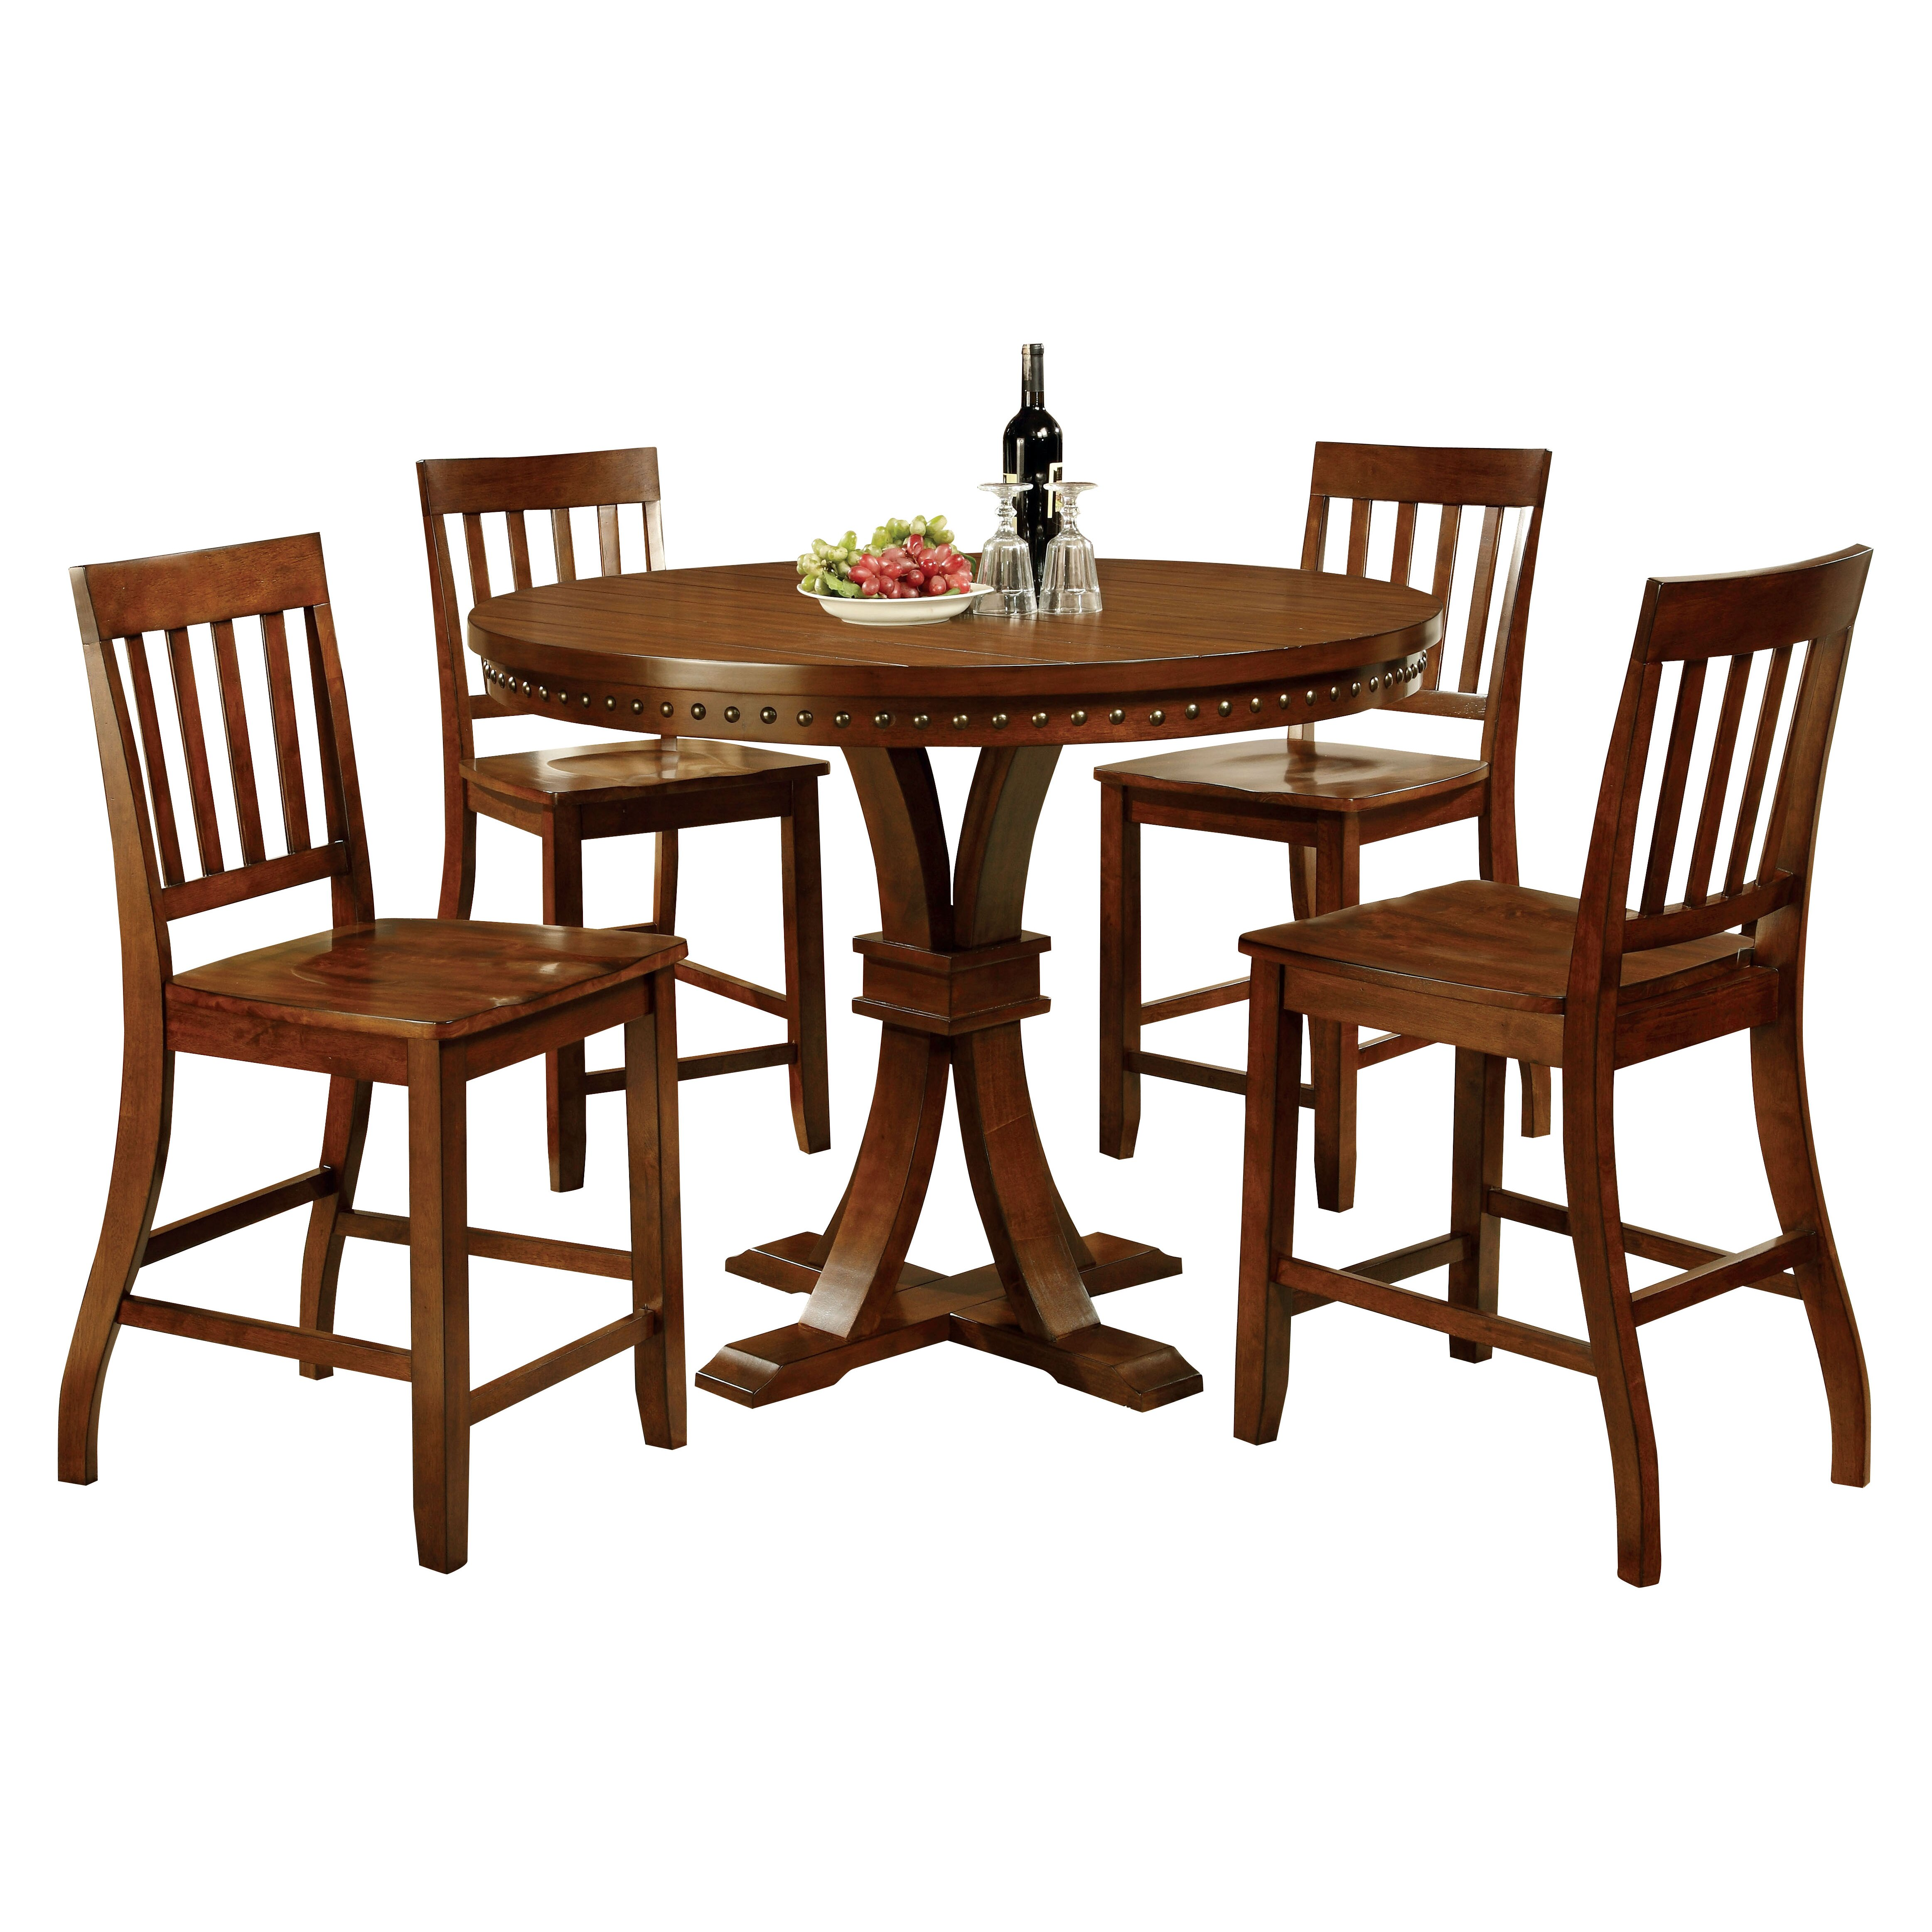 Hokku designs jared 5 piece dining set reviews Dining set design ideas